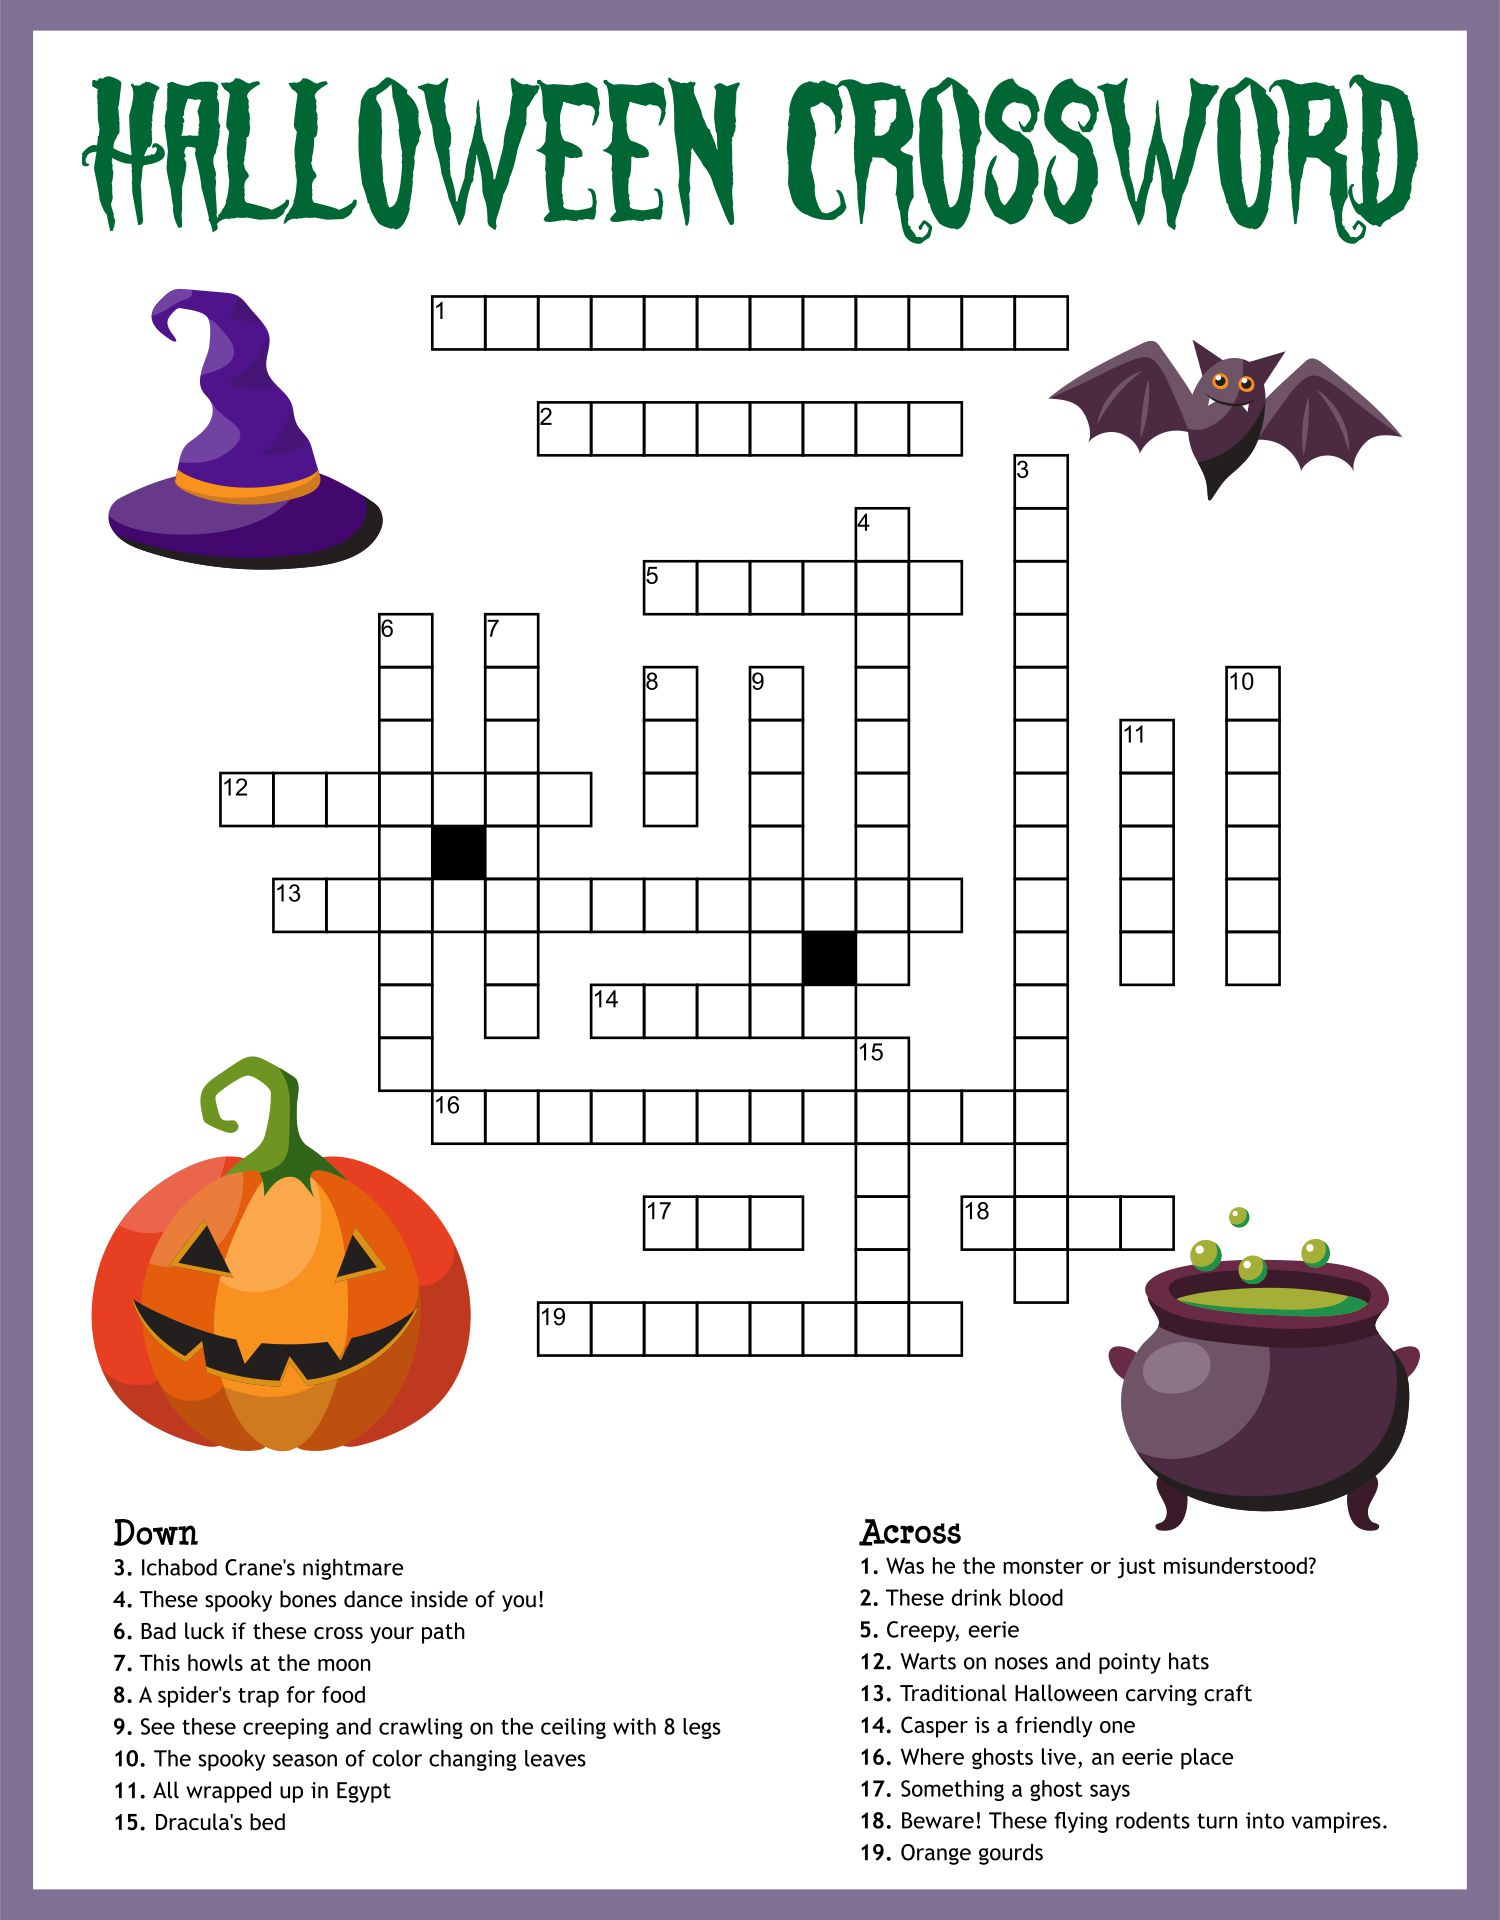 Free Printable Halloween Crossword Puzzles For Adults